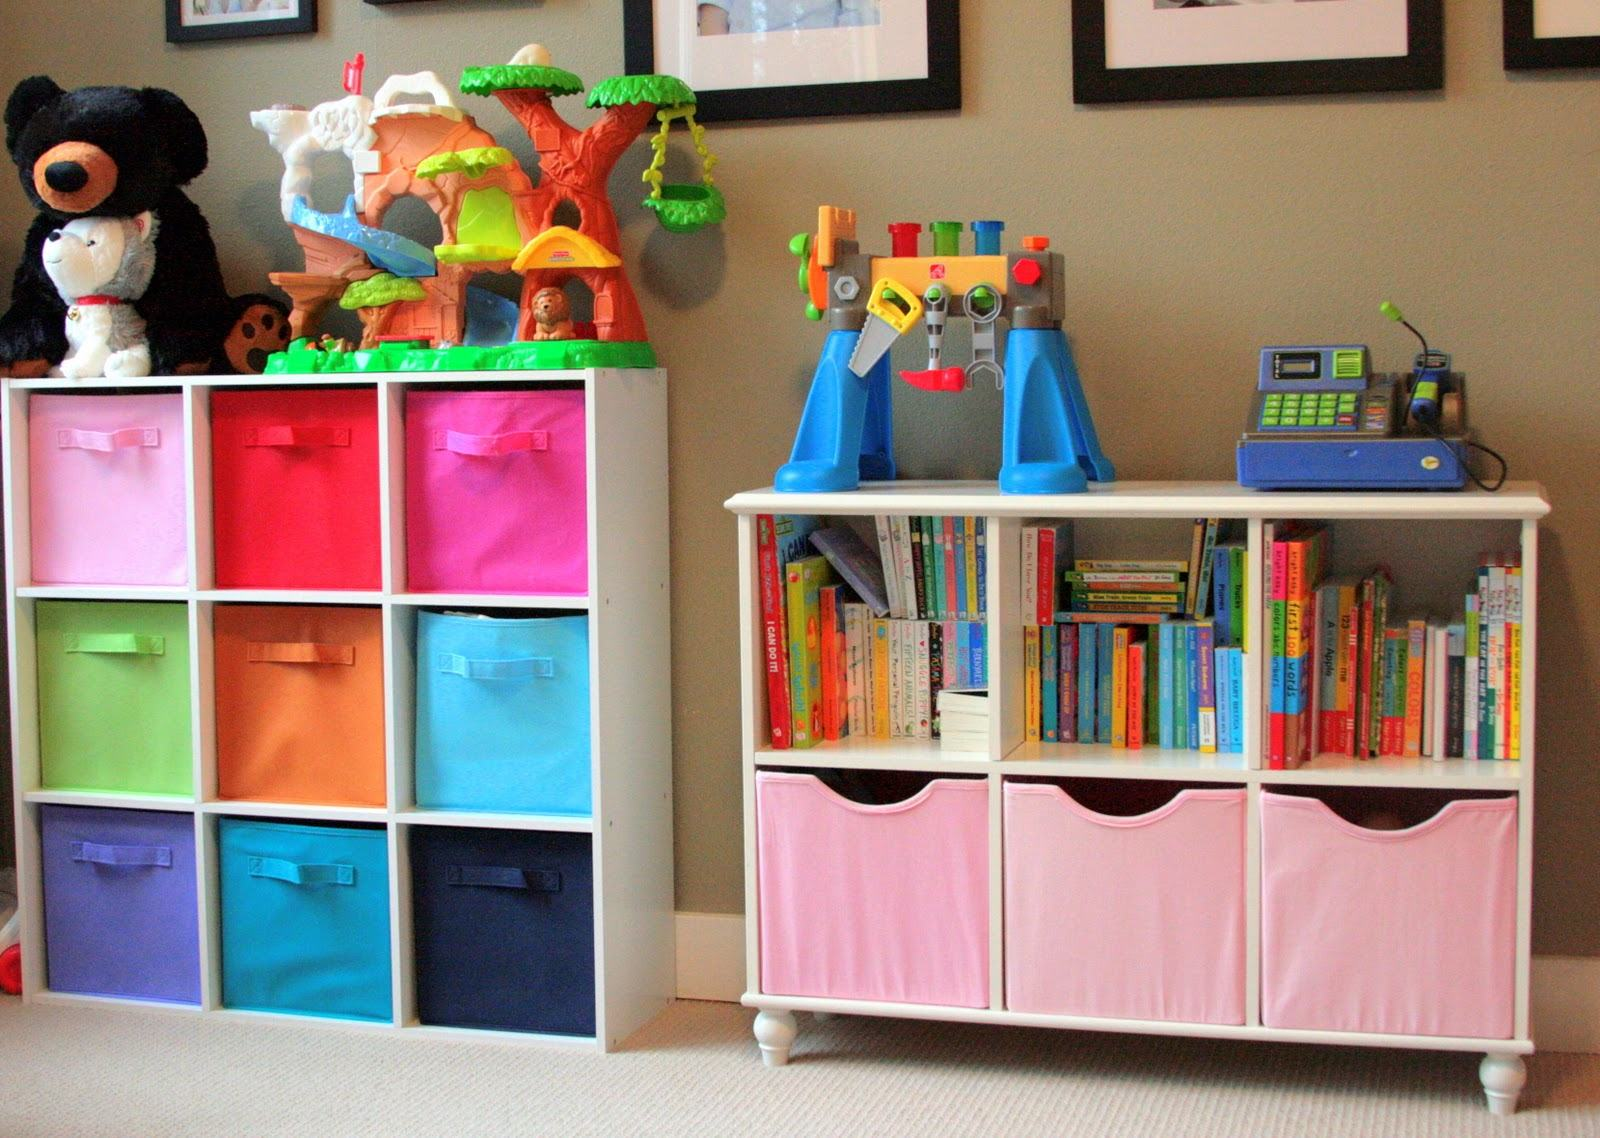 Top 10 Toys Organization Ideas at Low Price